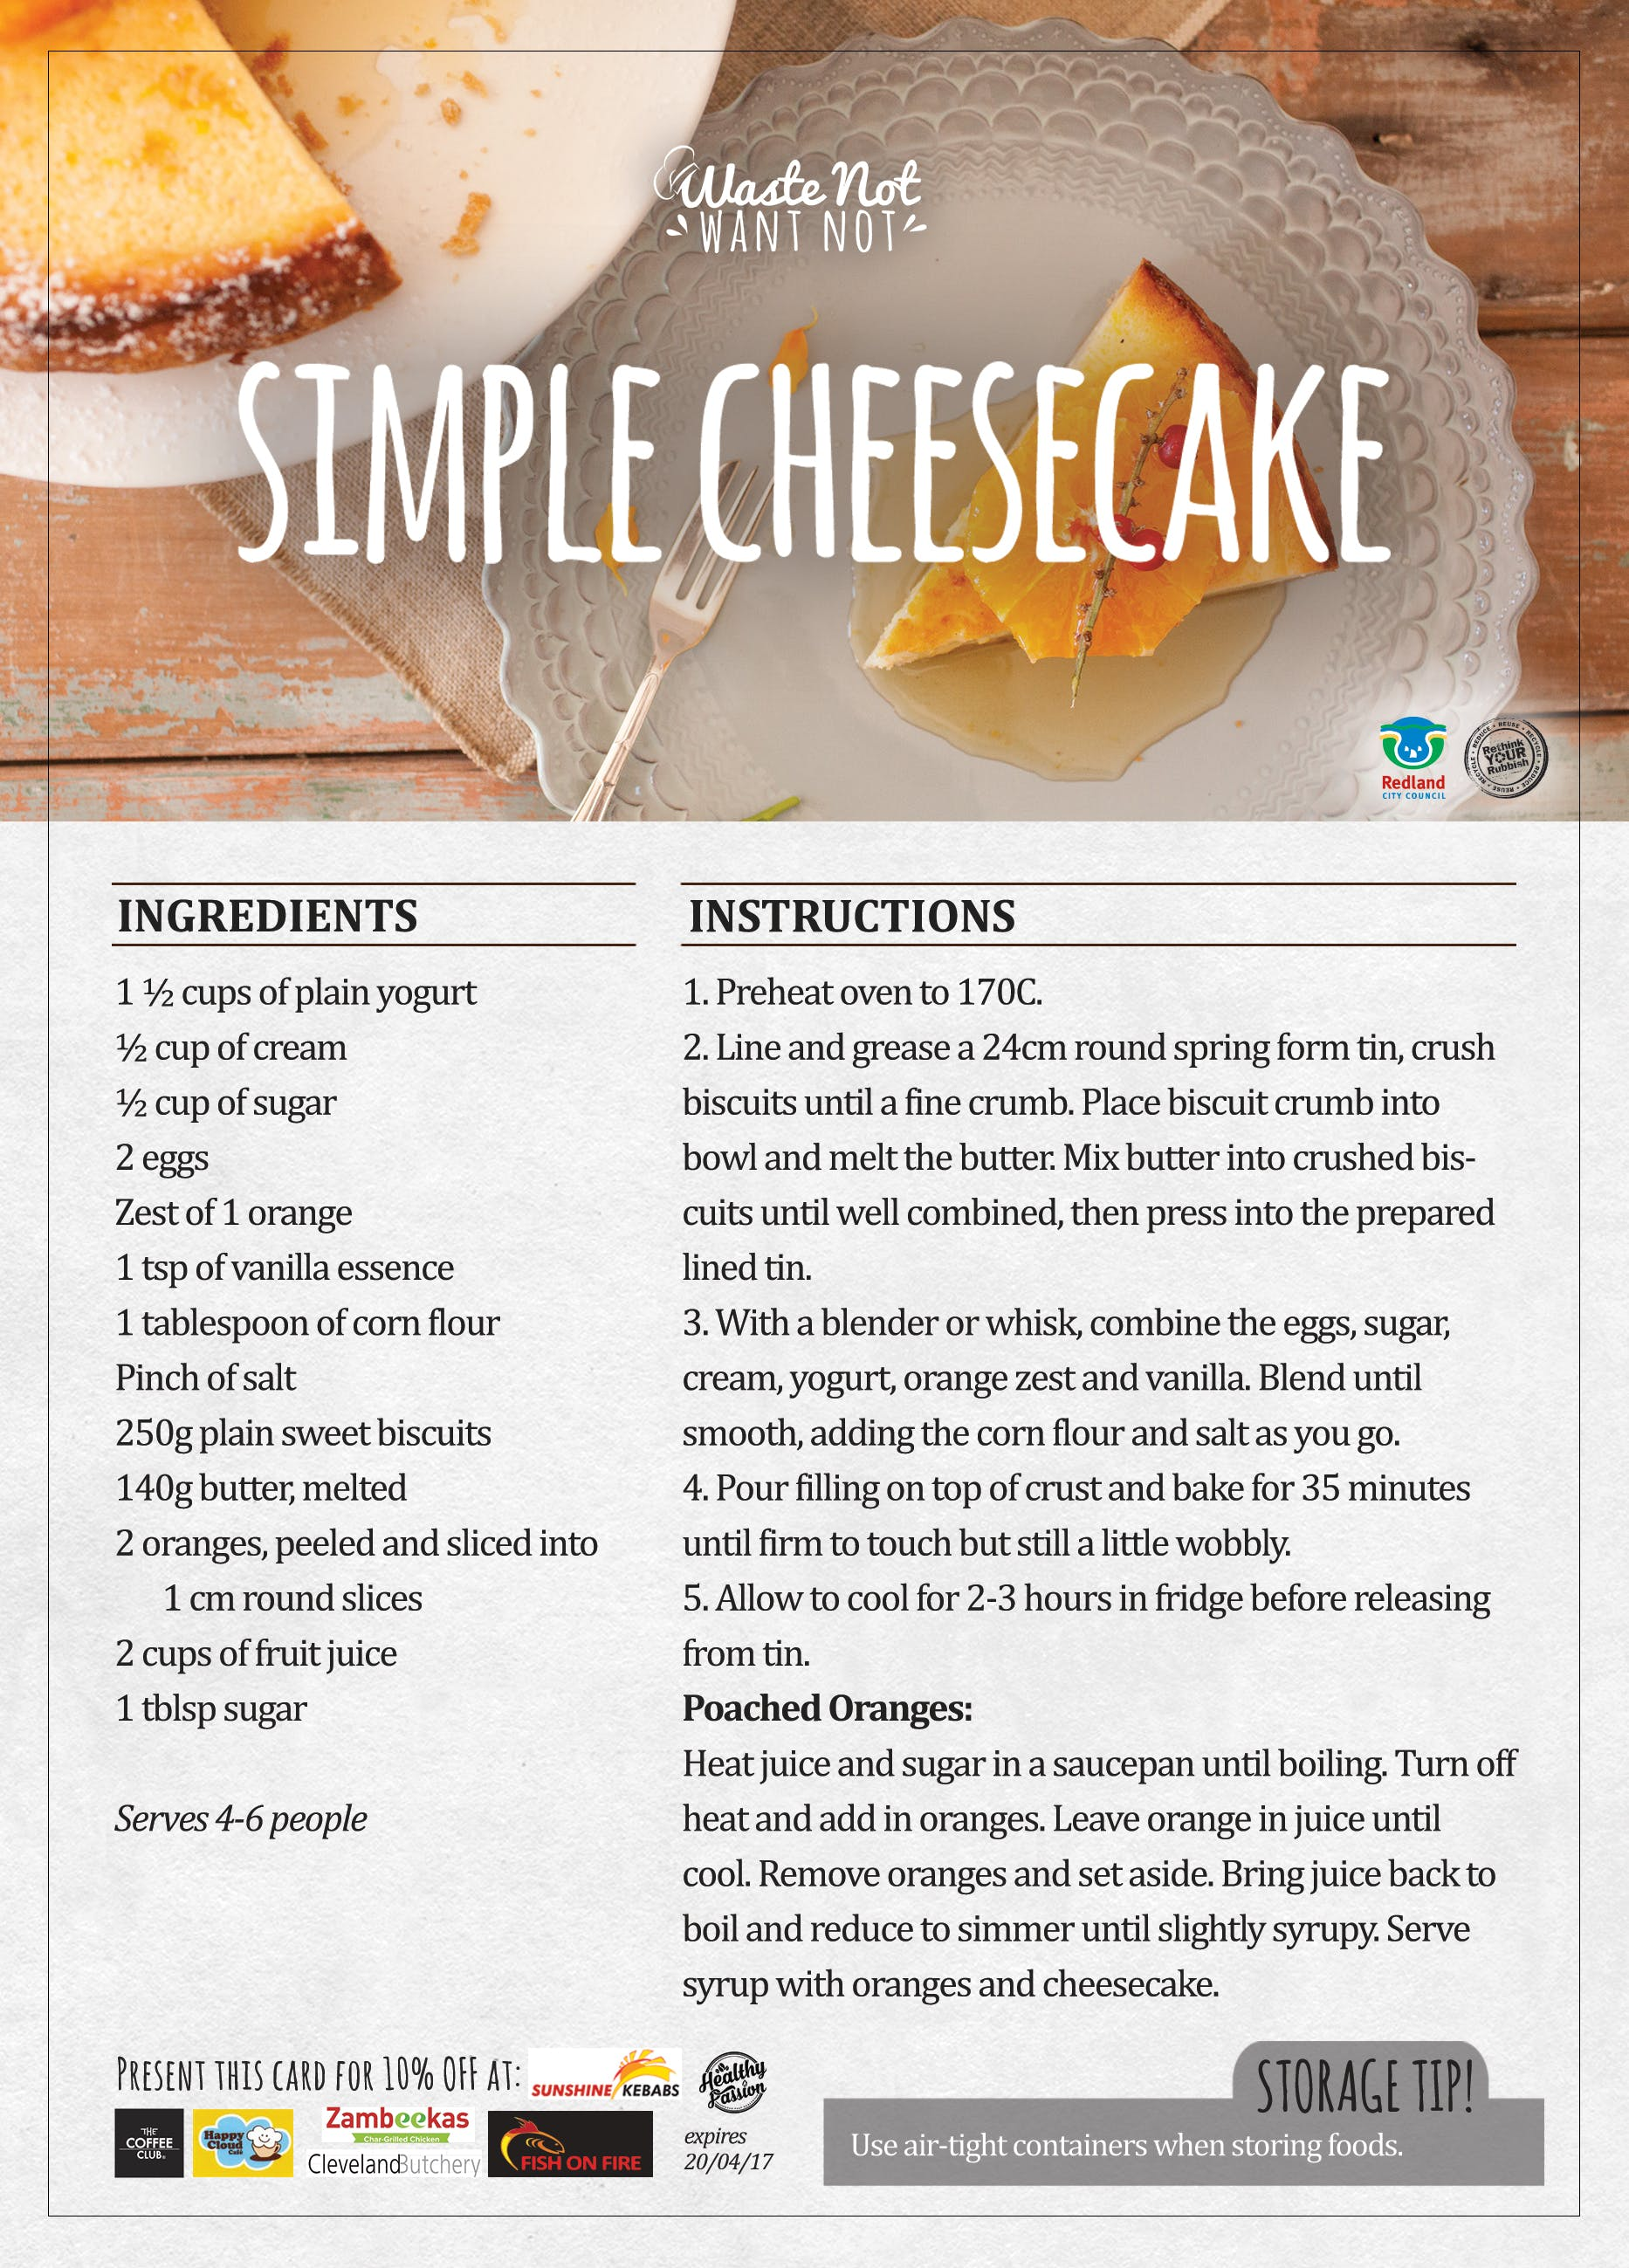 Simple cheesecake recipe card